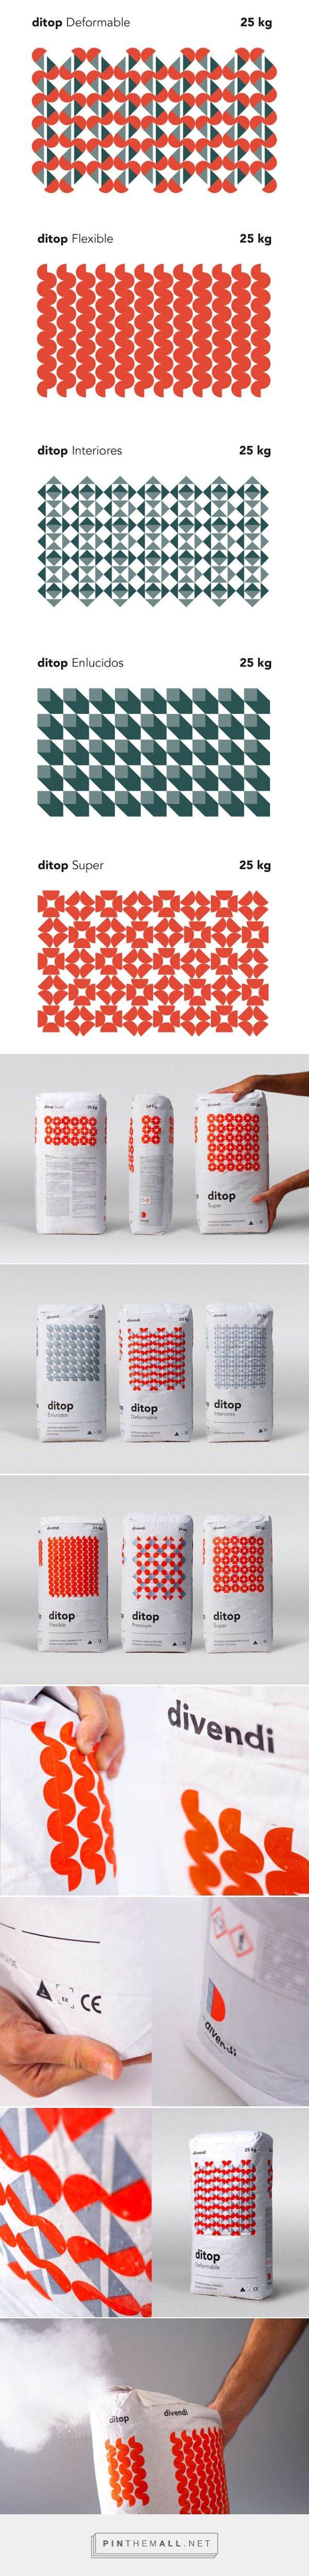 Ditop Cement Packaging Patterns designed by Rubio & del Amo - http://www.packagingoftheworld.com/2015/12/ditop-cement.html